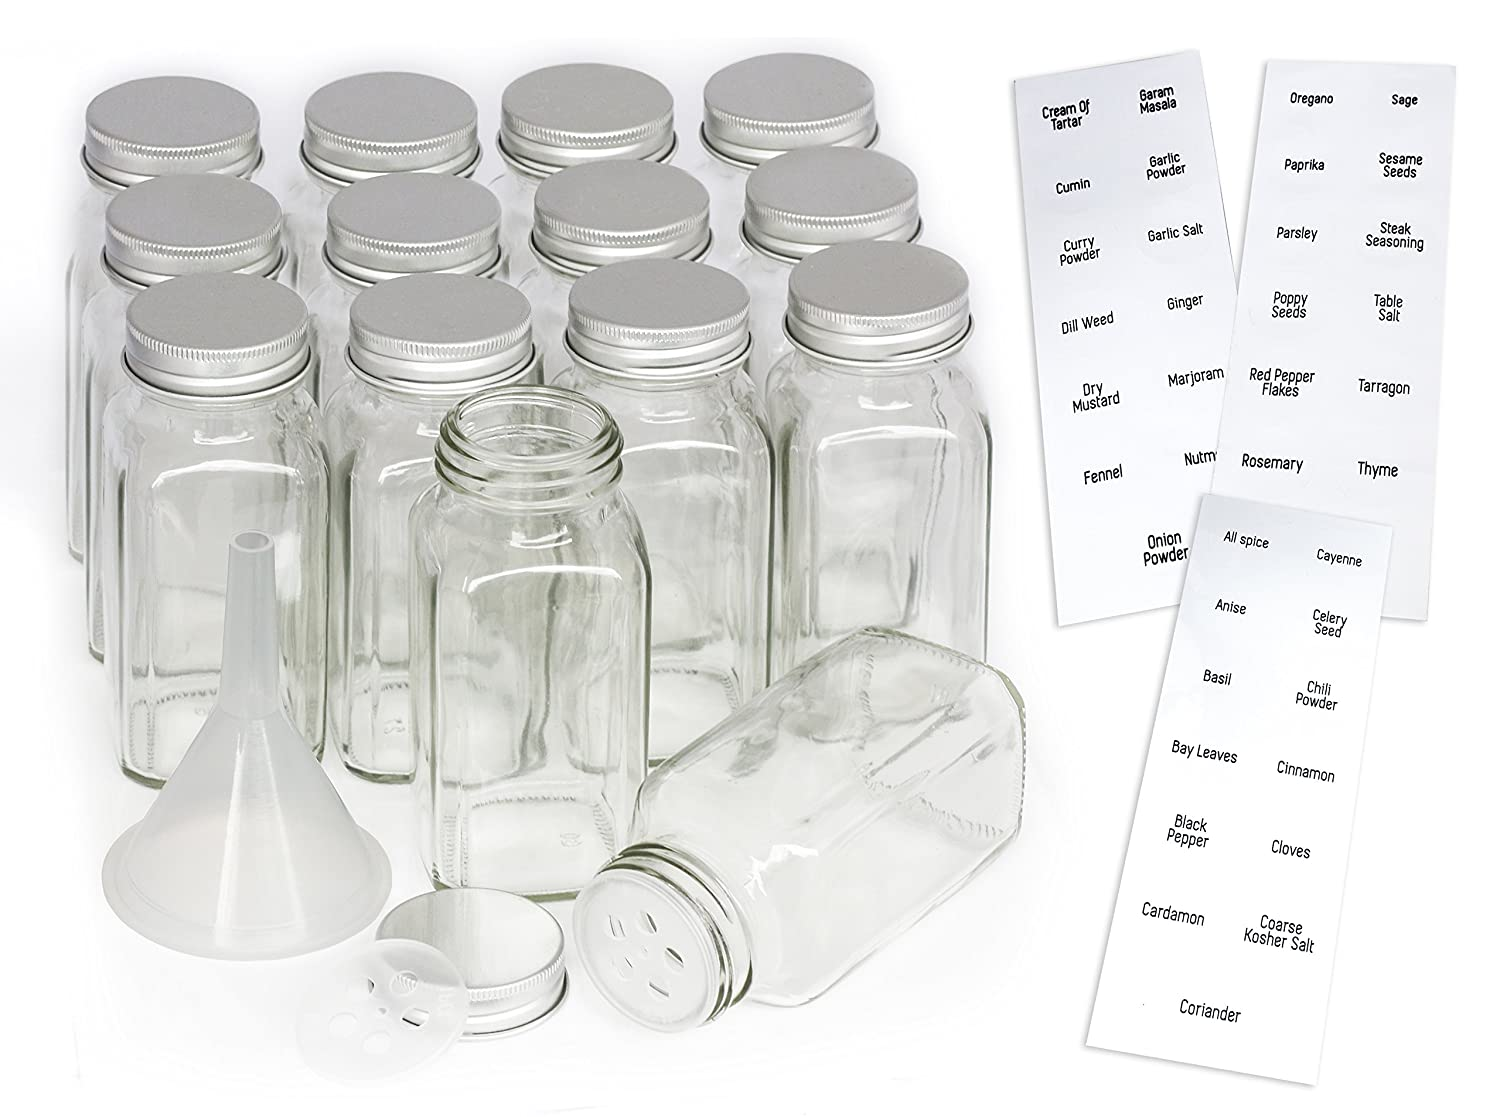 14 Square Glass Spice Jars with Shaker Lids and Metal caps (6 oz), Plastic Funnel, Pre-Printed Label set   Organize Salt, Pepper, Herbs & More